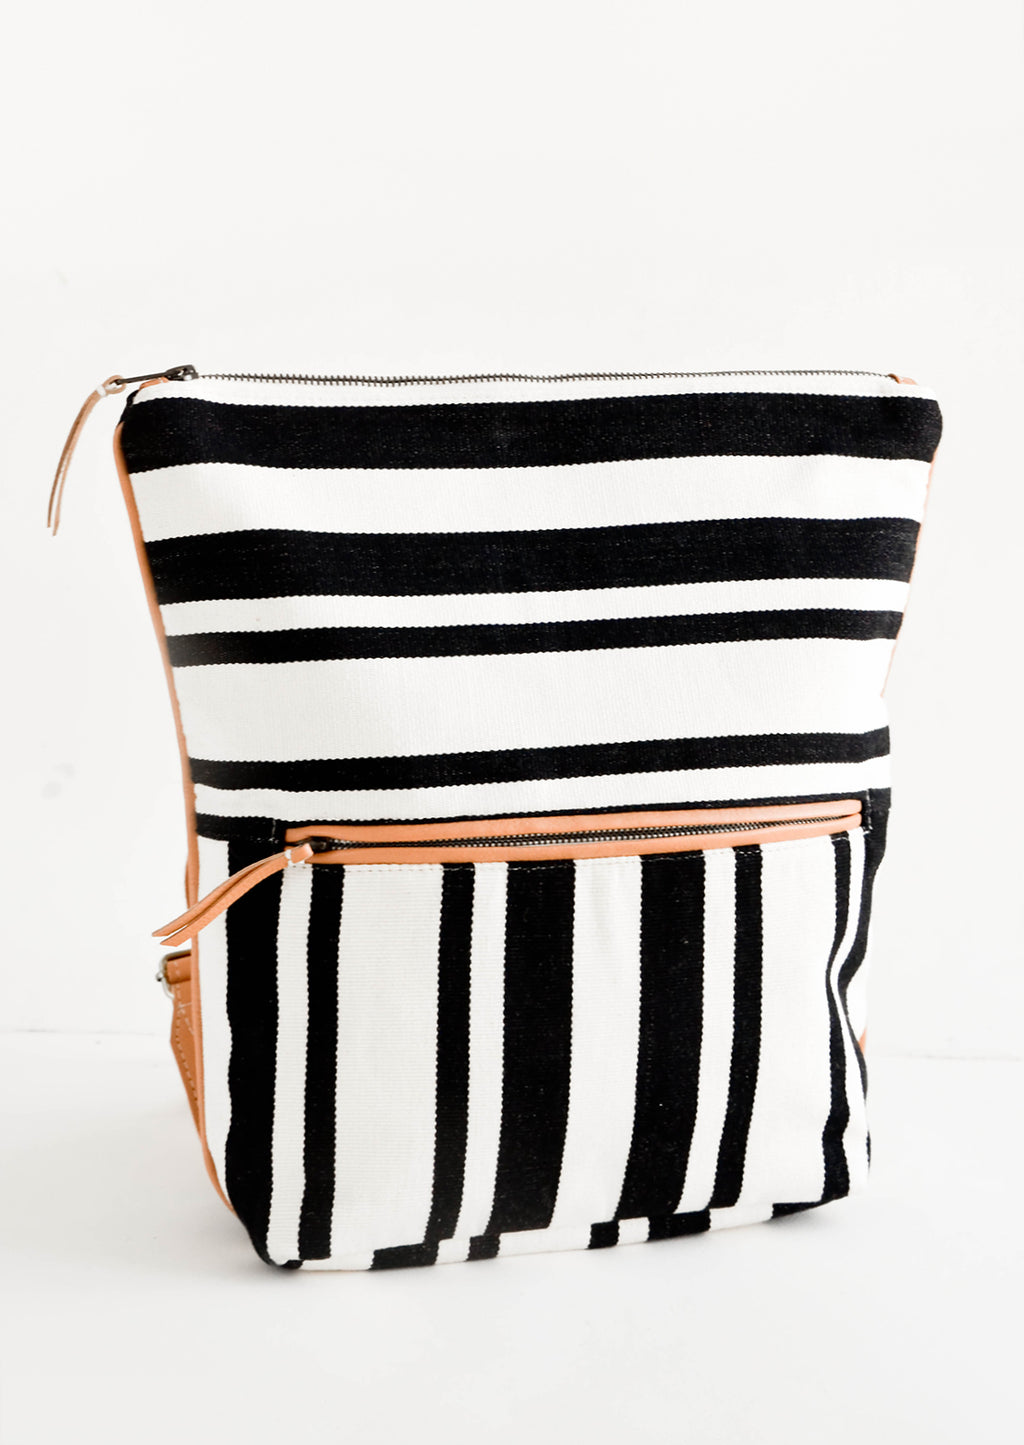 1: Fashion backpack in black and white striped cotton canvas with tan leather accents